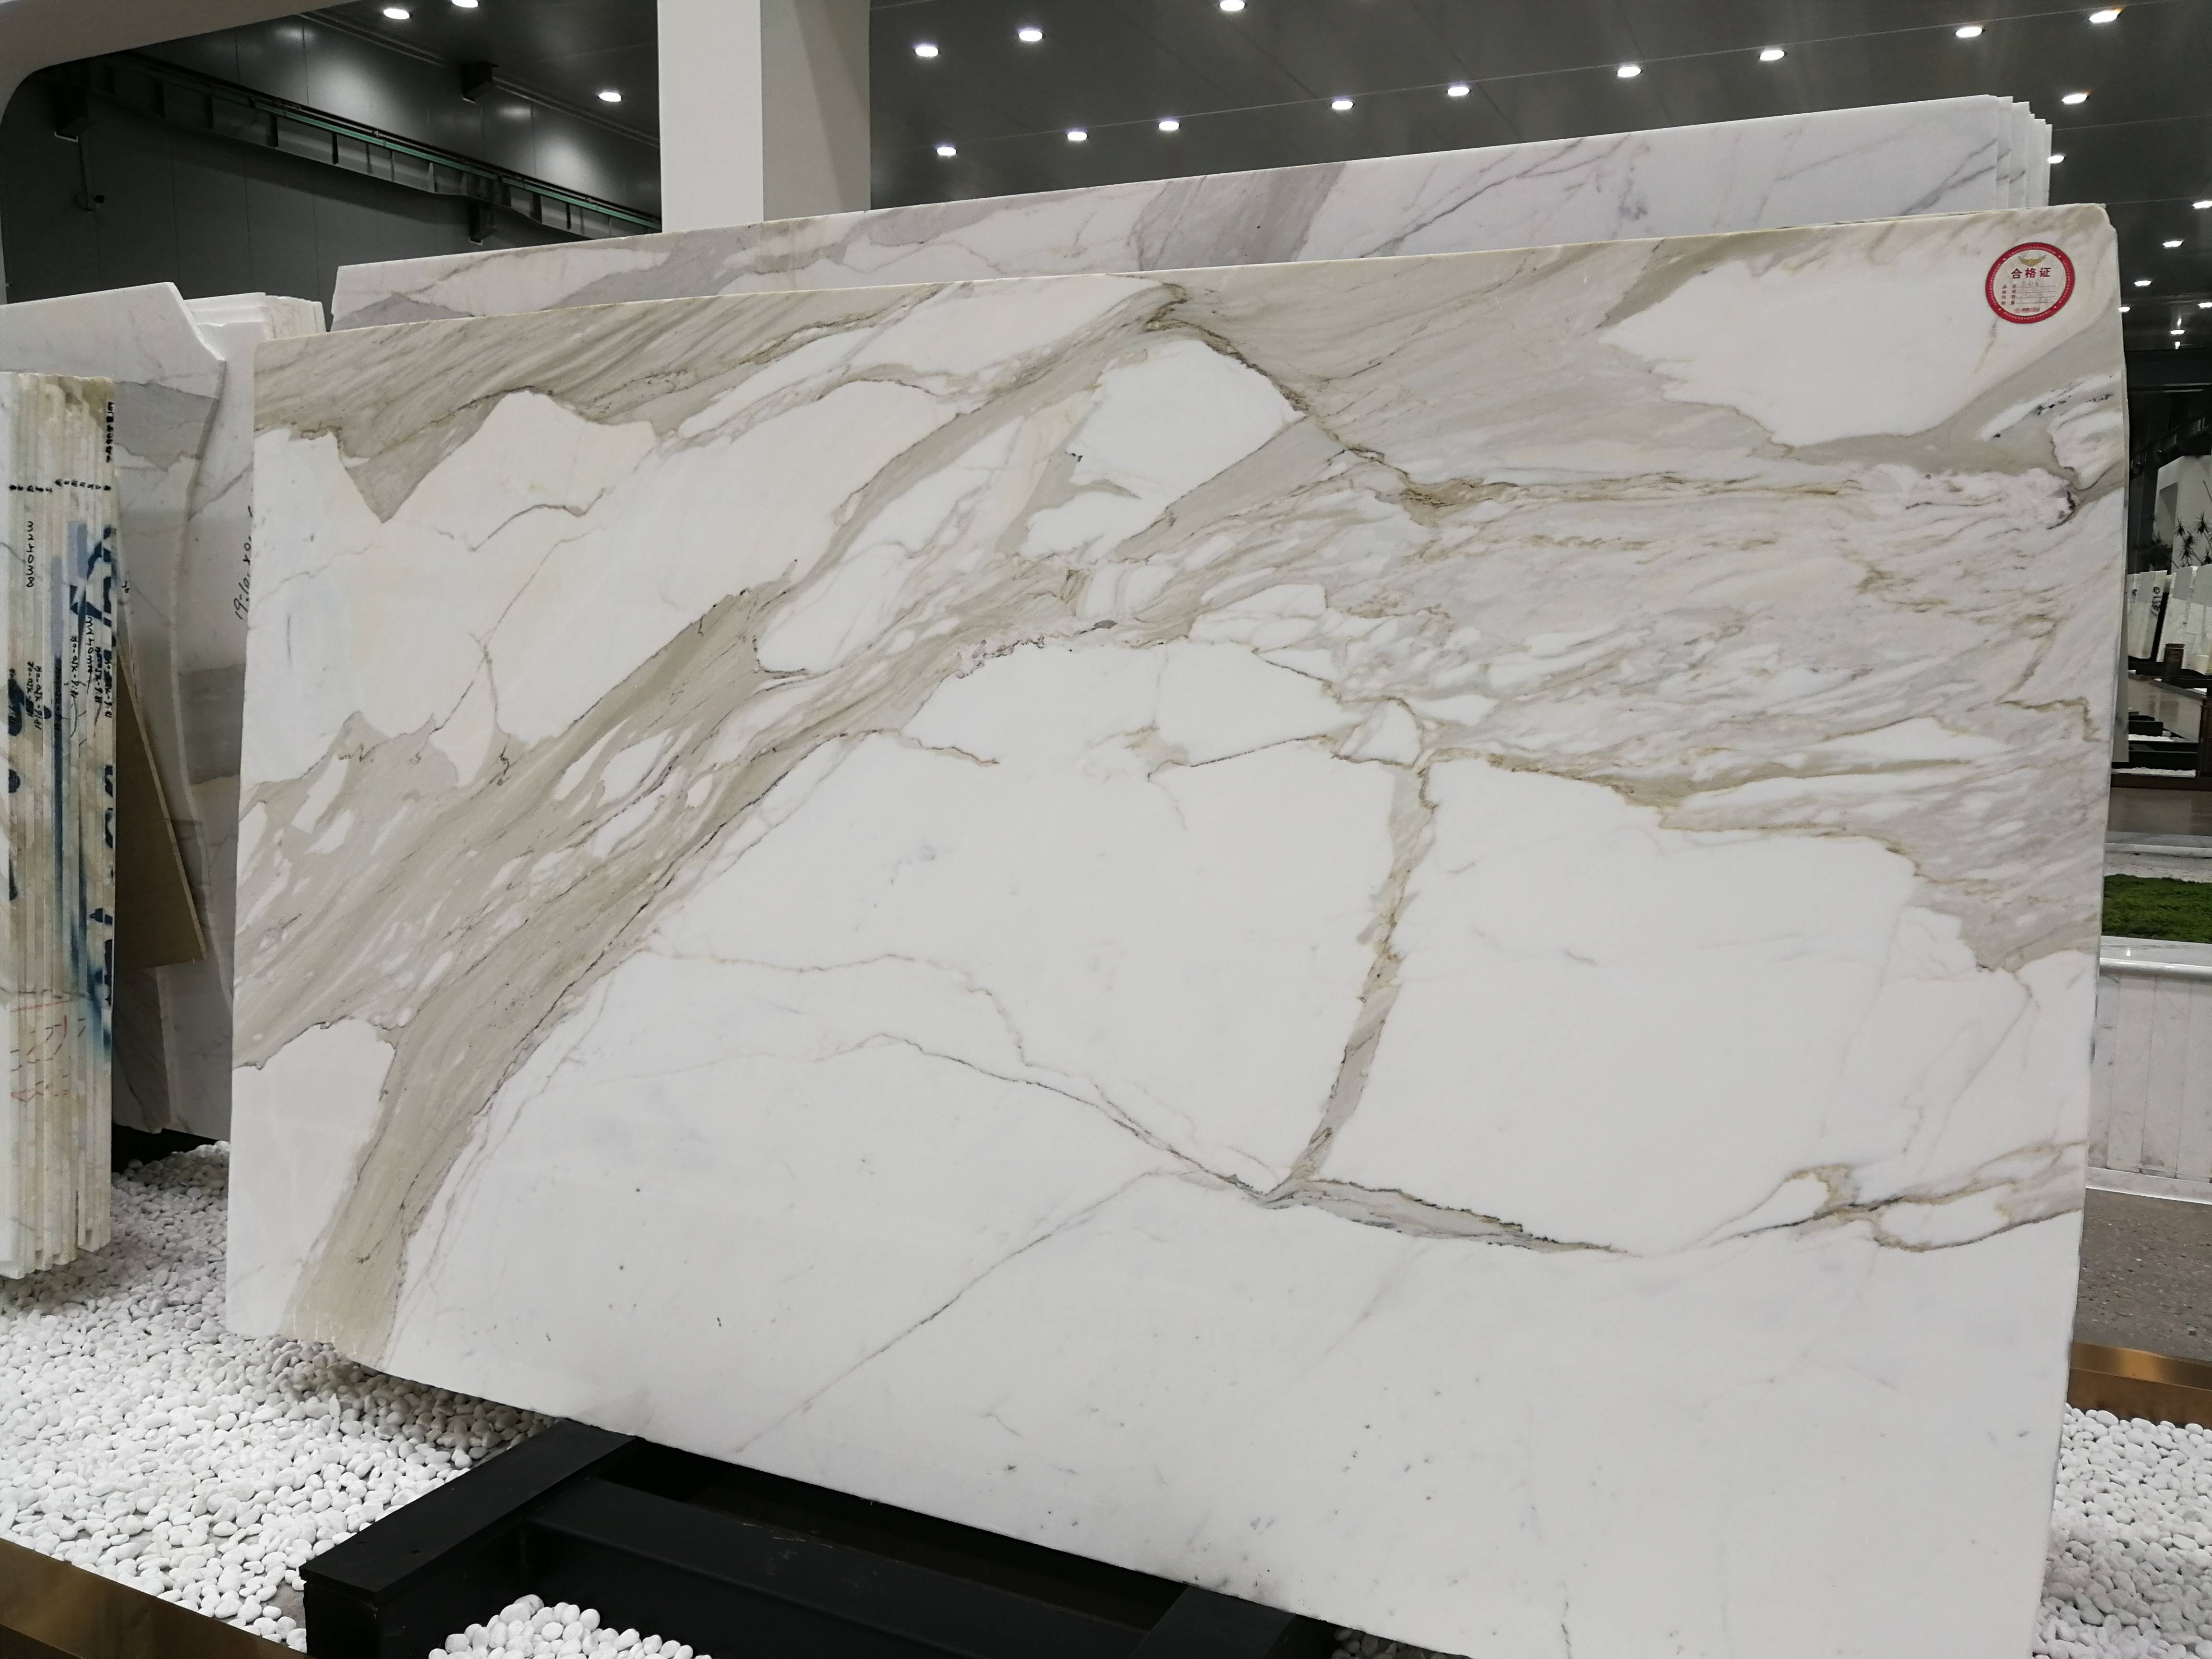 How to distinguish artificial marble and natural marble